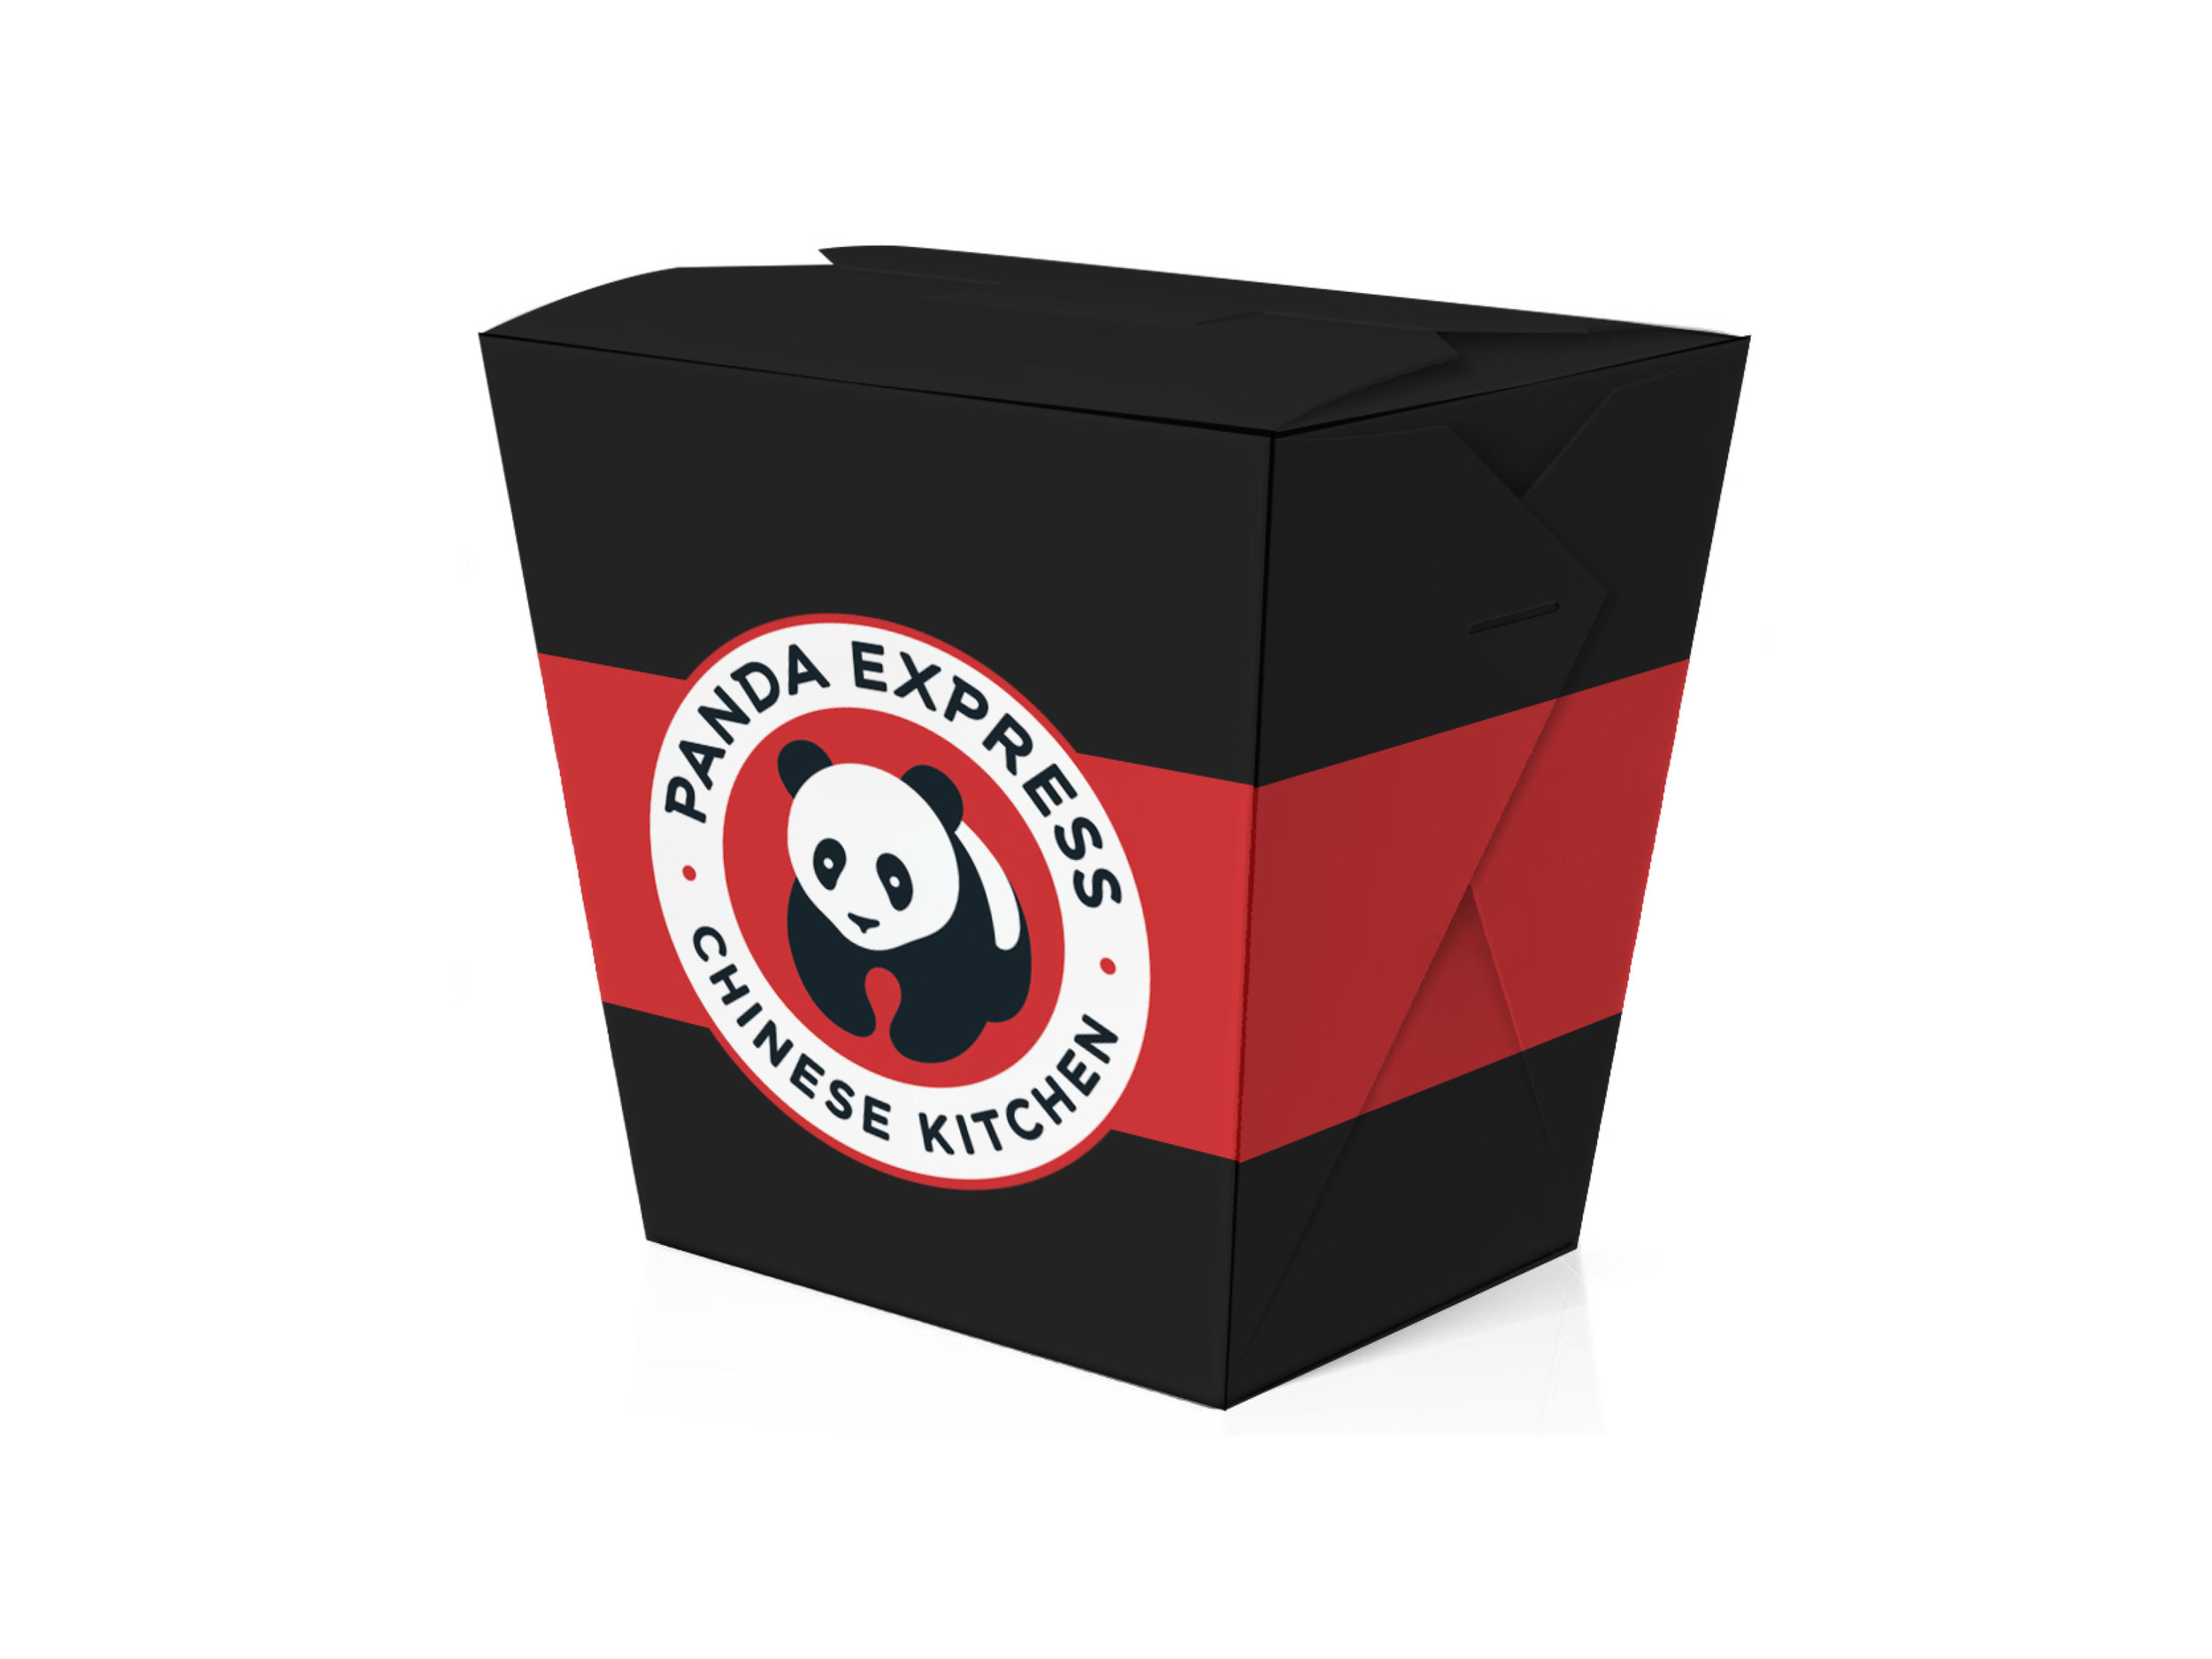 Takeout Box Design